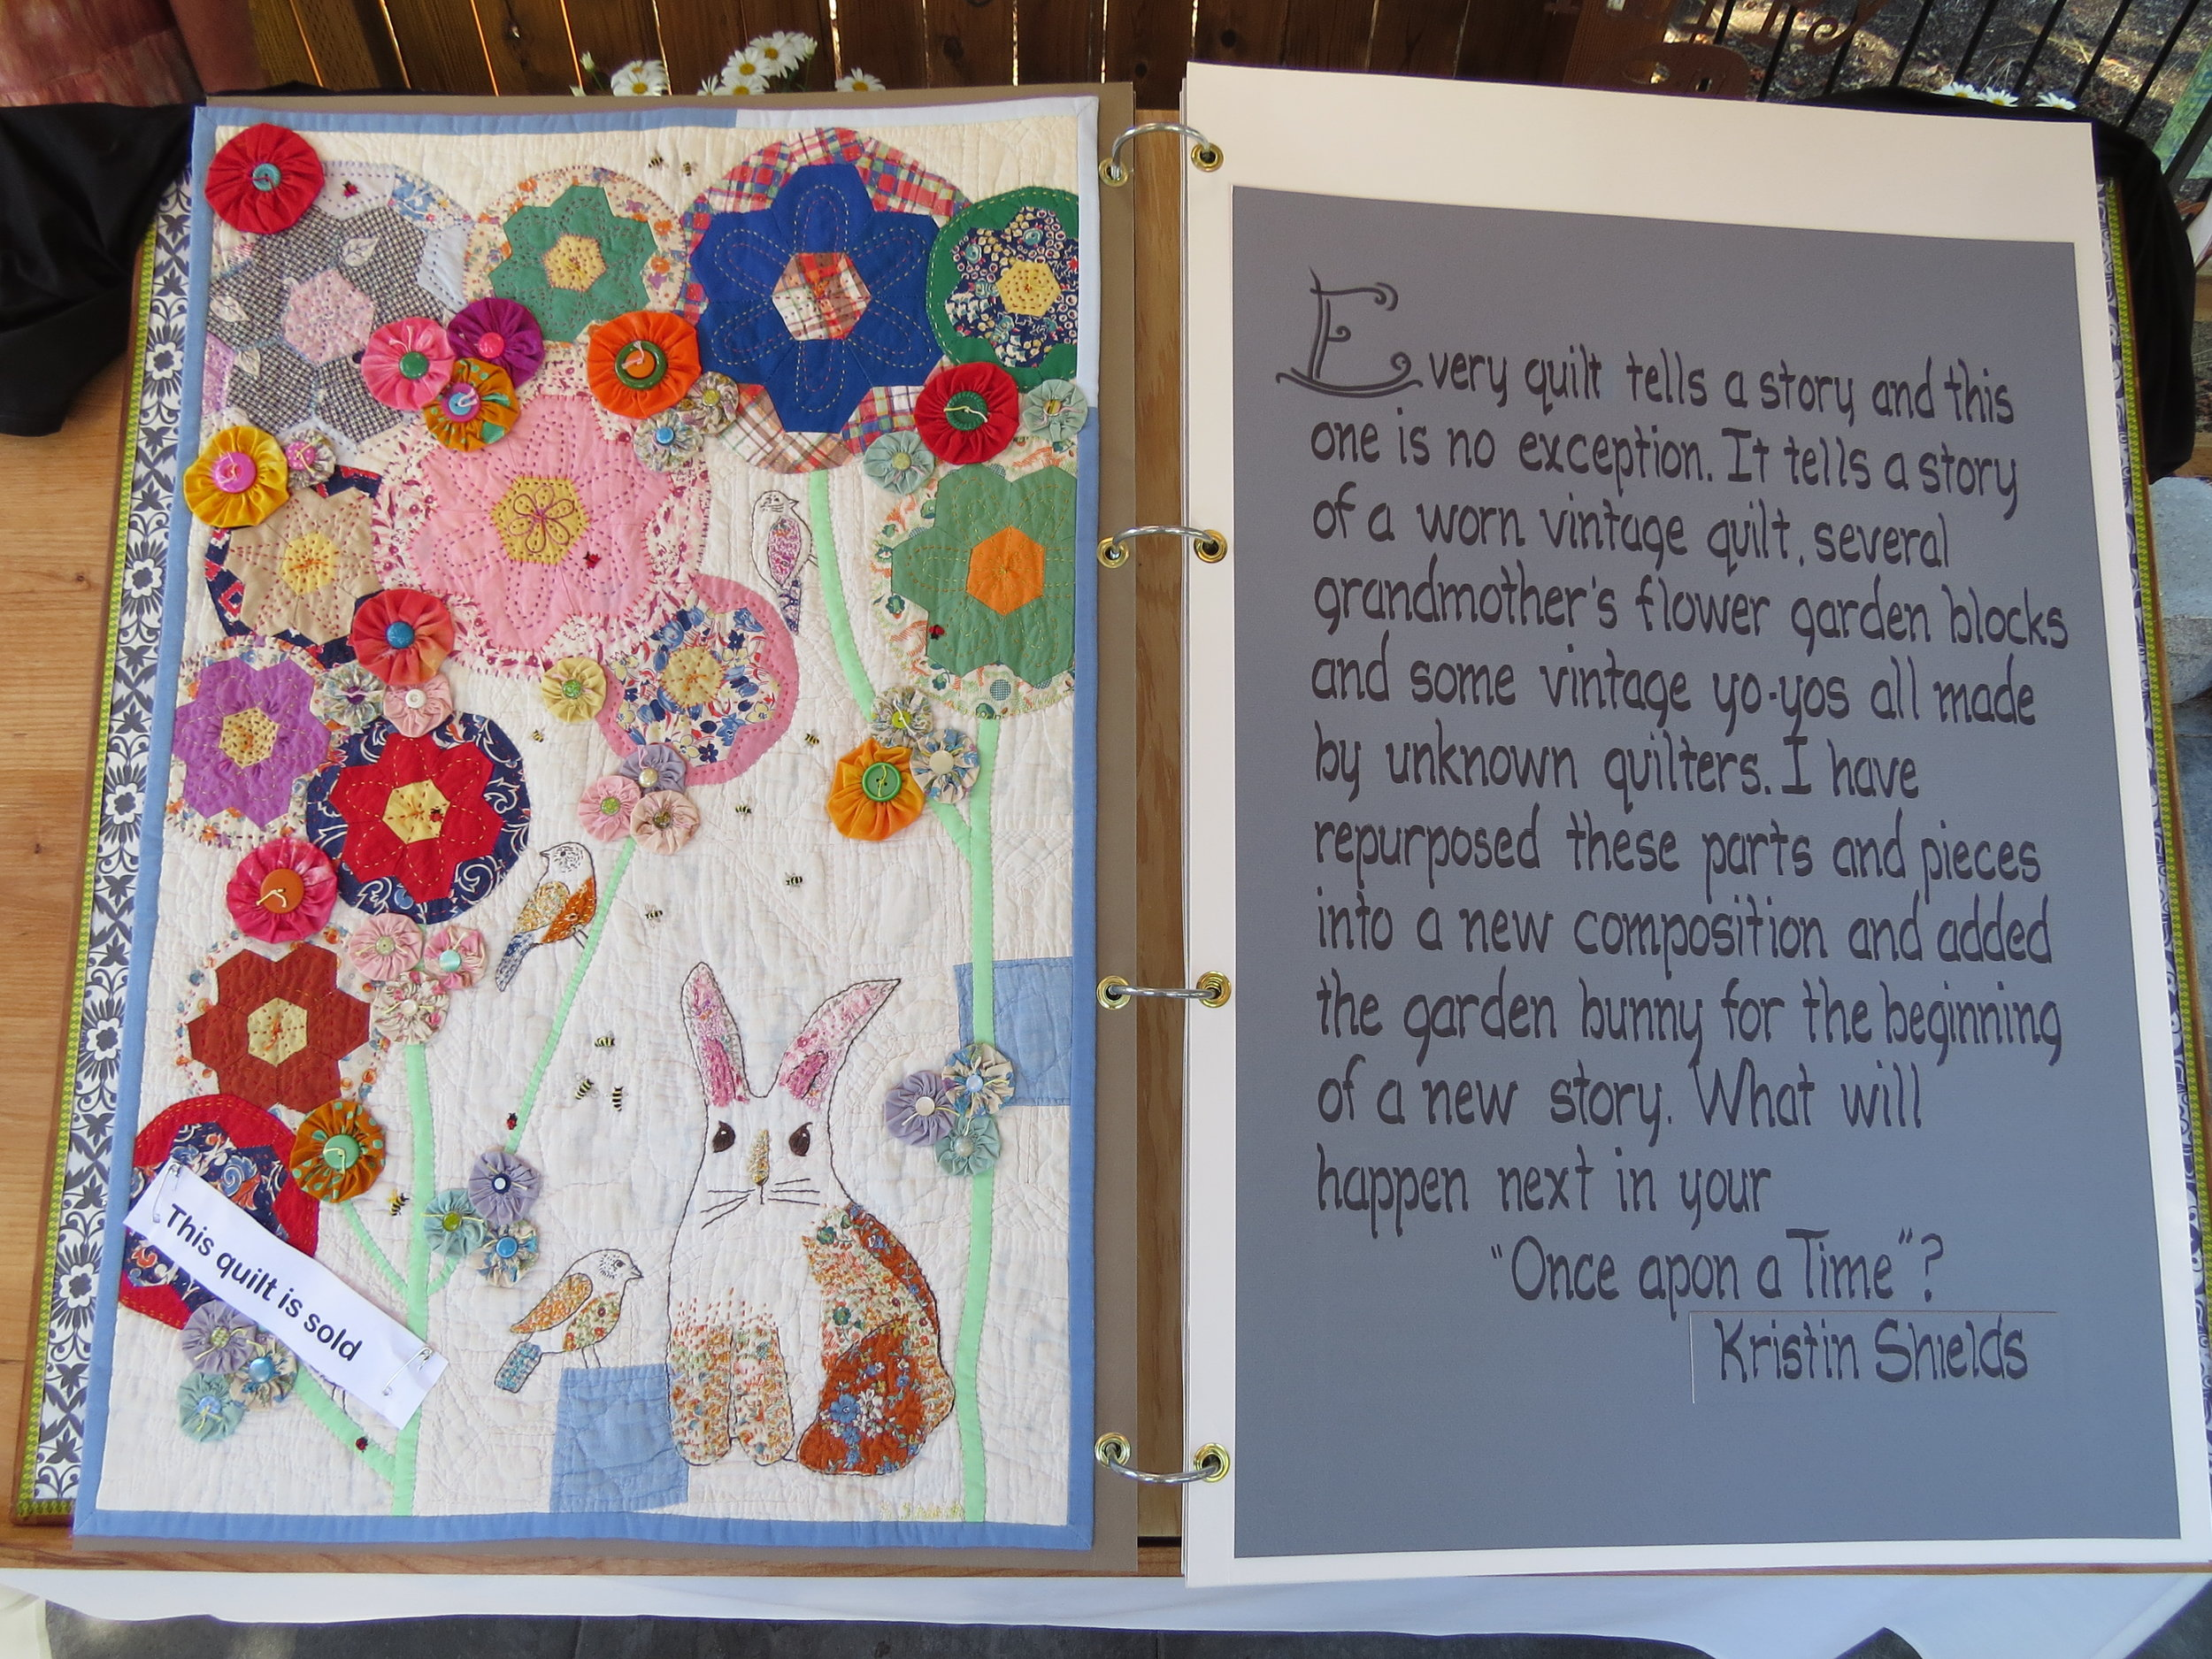 My Quilt!- Once Upon a Quilt by Kristin Shields, photo by Marion Shimoda